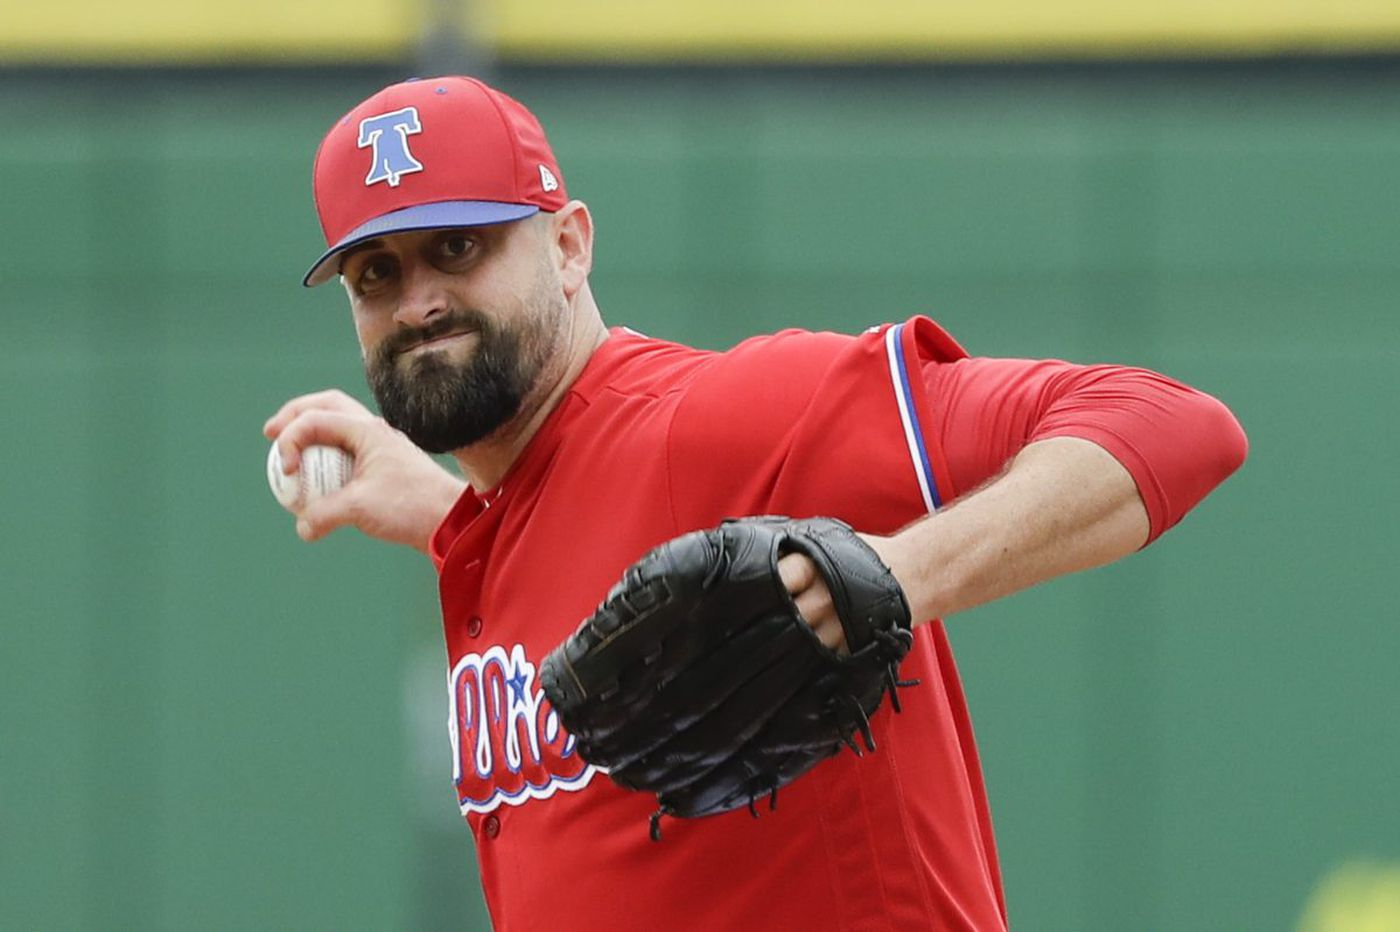 Pat Neshek unsure how long forearm injury will keep him out